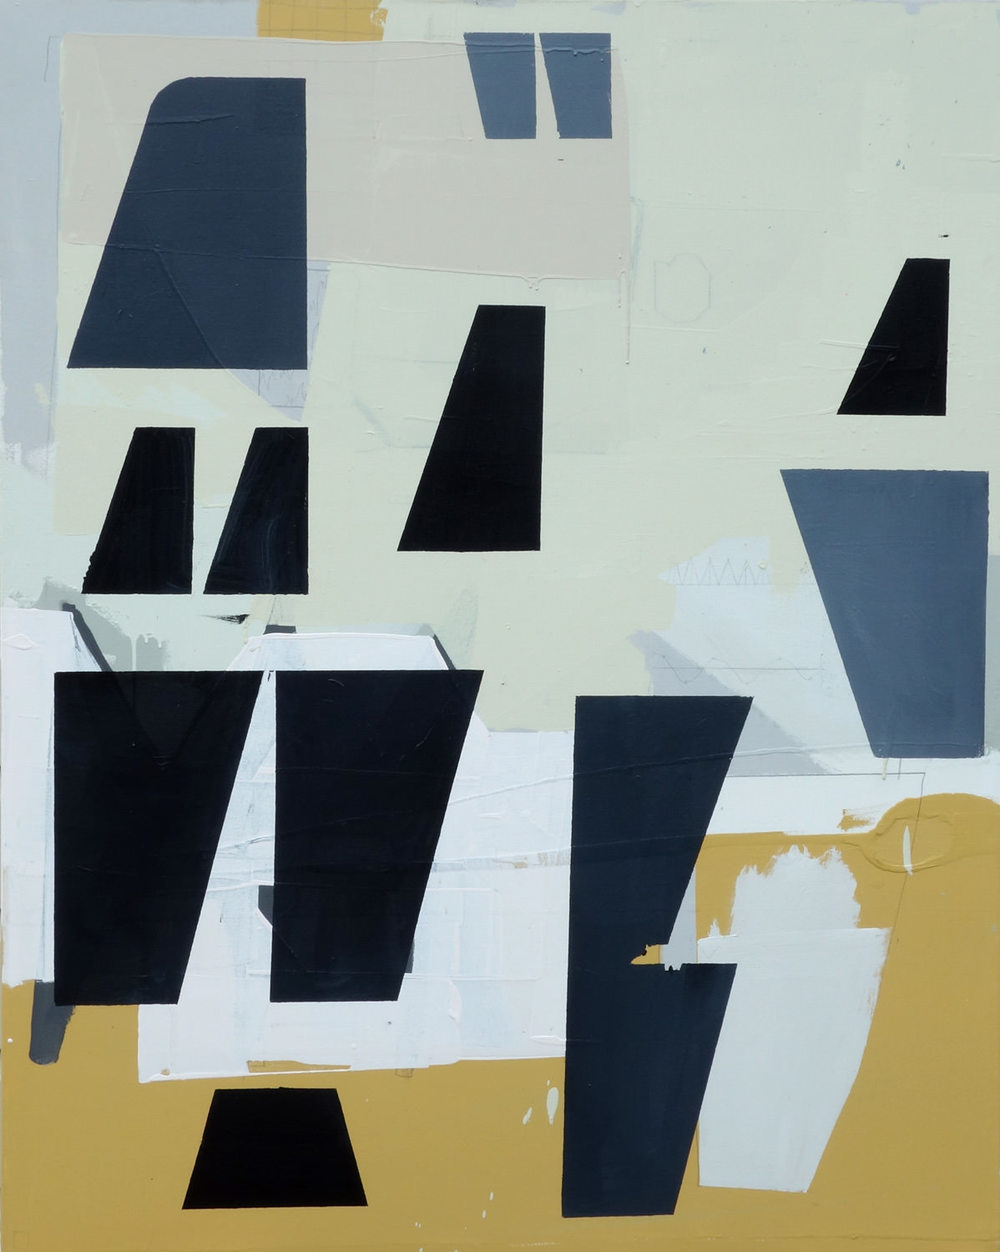 Composition with new shapes